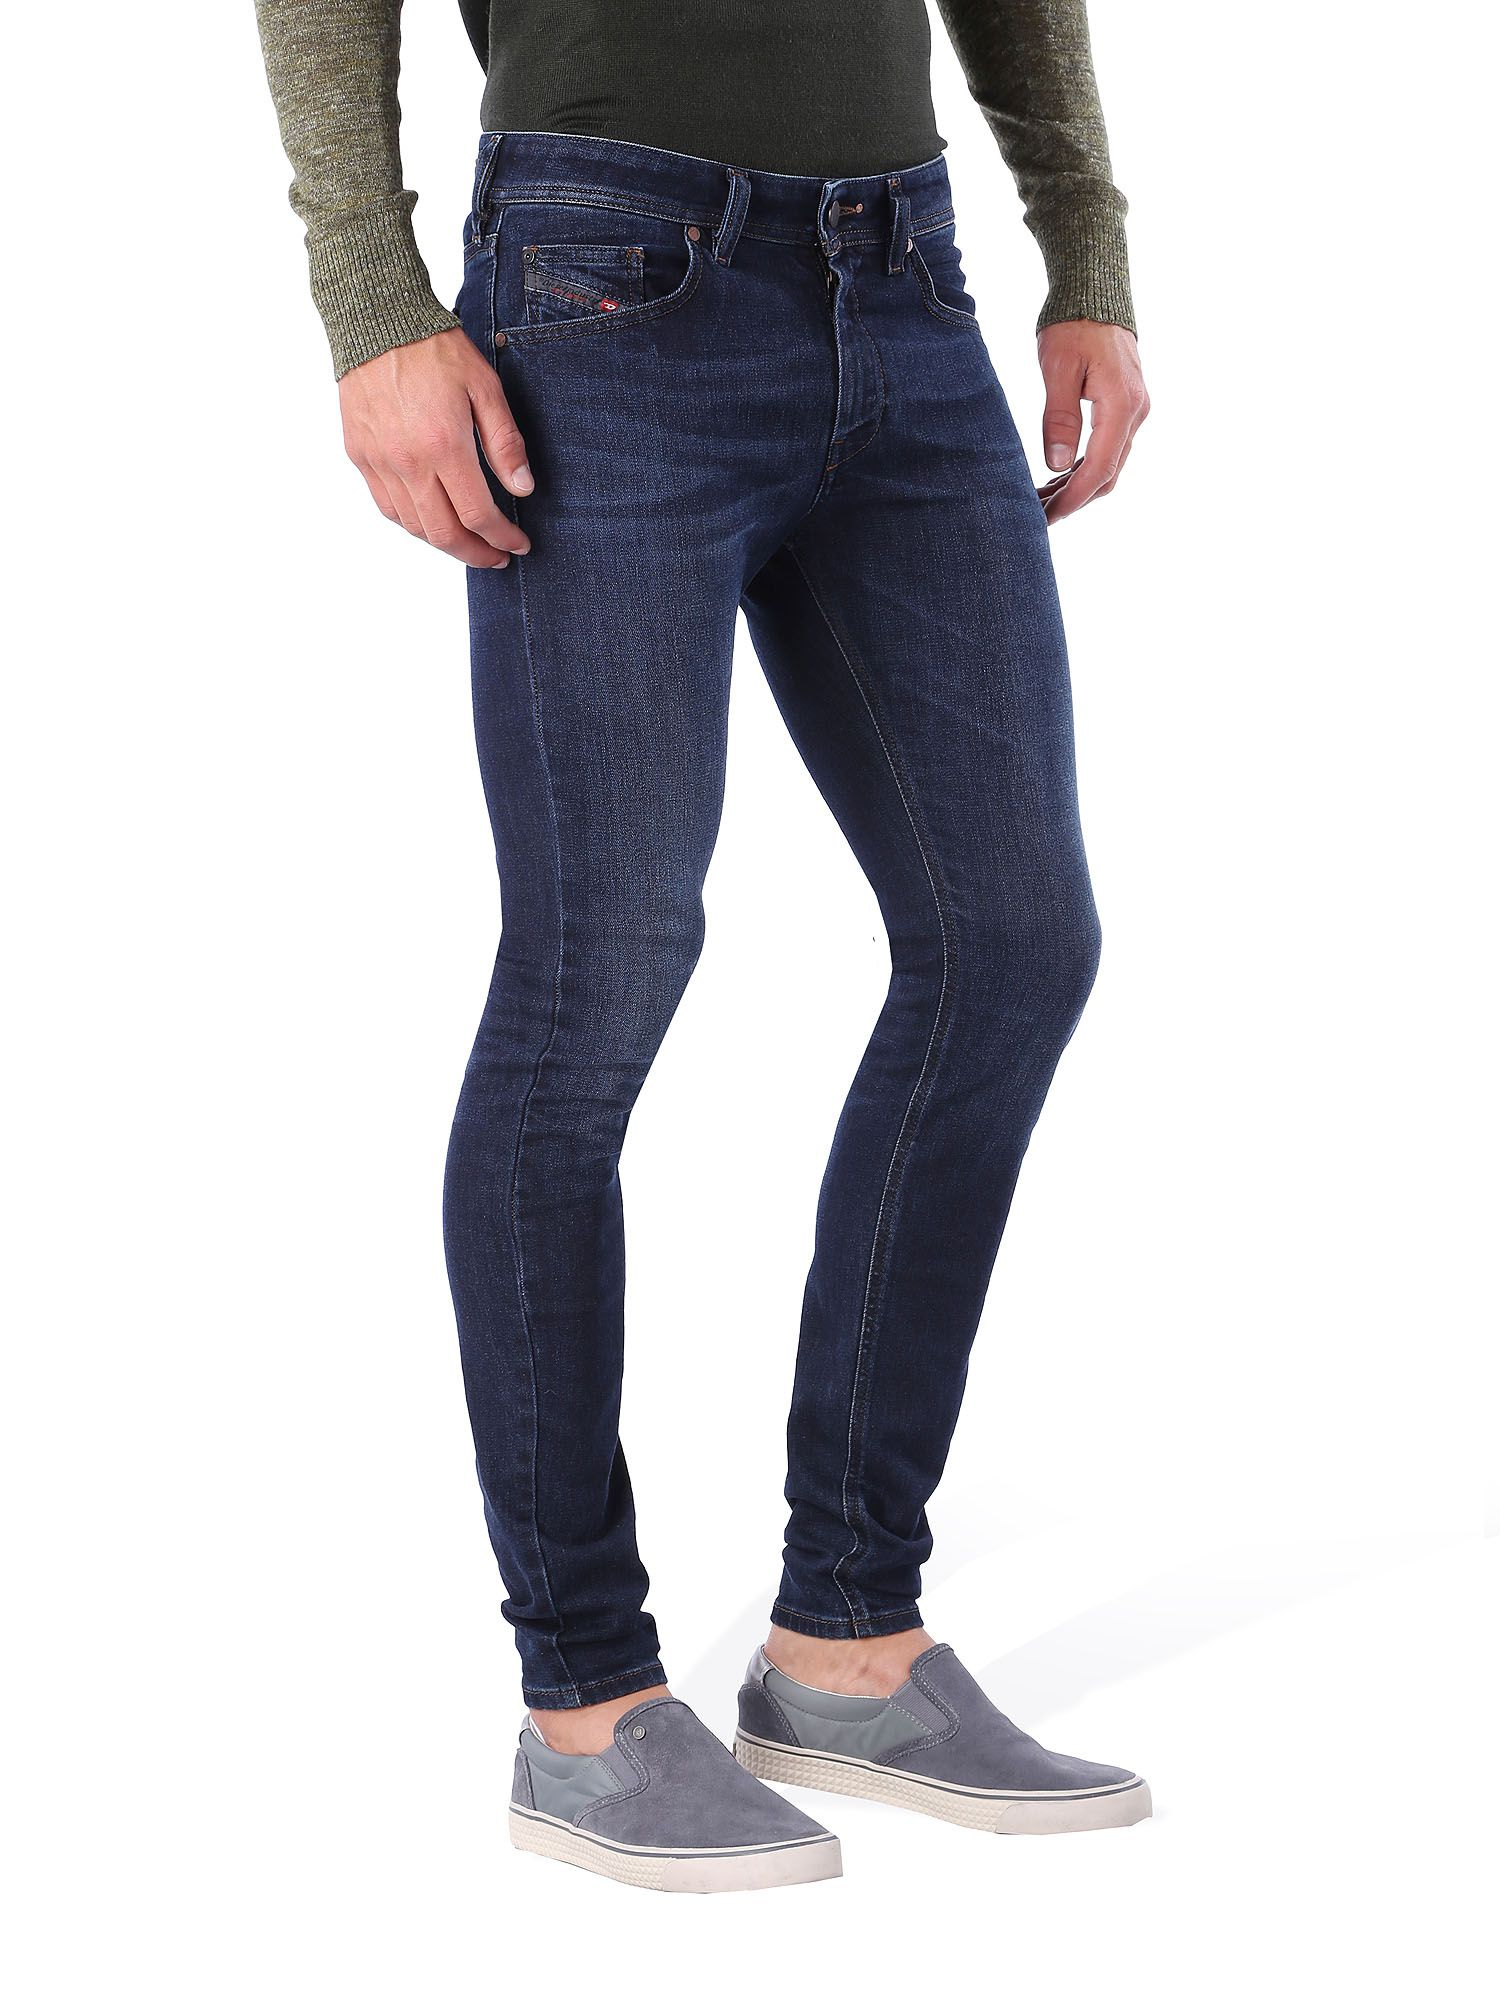 Well – you can probably guess from the definition of skinny jeans: jeans which are EXTREMELY tight all the way from the waist to the ankles. Their build involves a lowering of the crotch area – which makes your legs appear shorter than they are.